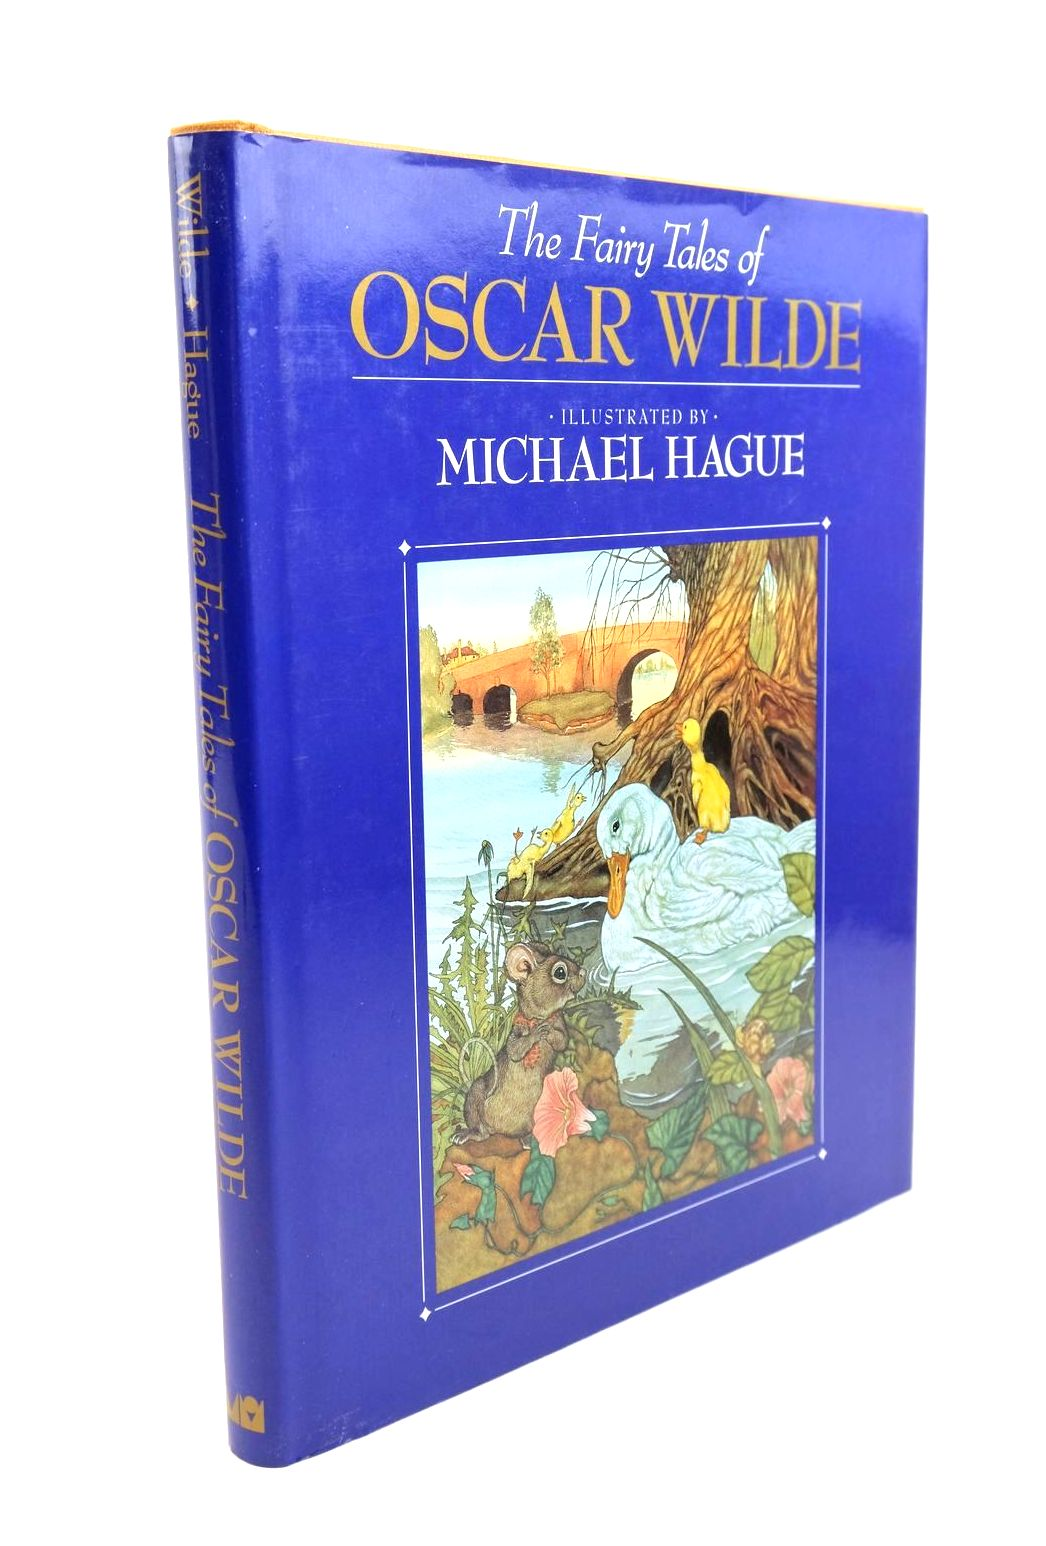 Photo of THE FAIRY TALES OF OSCAR WILDE written by Wilde, Oscar illustrated by Hague, Michael published by Michael O'Mara Books Limited (STOCK CODE: 1321472)  for sale by Stella & Rose's Books